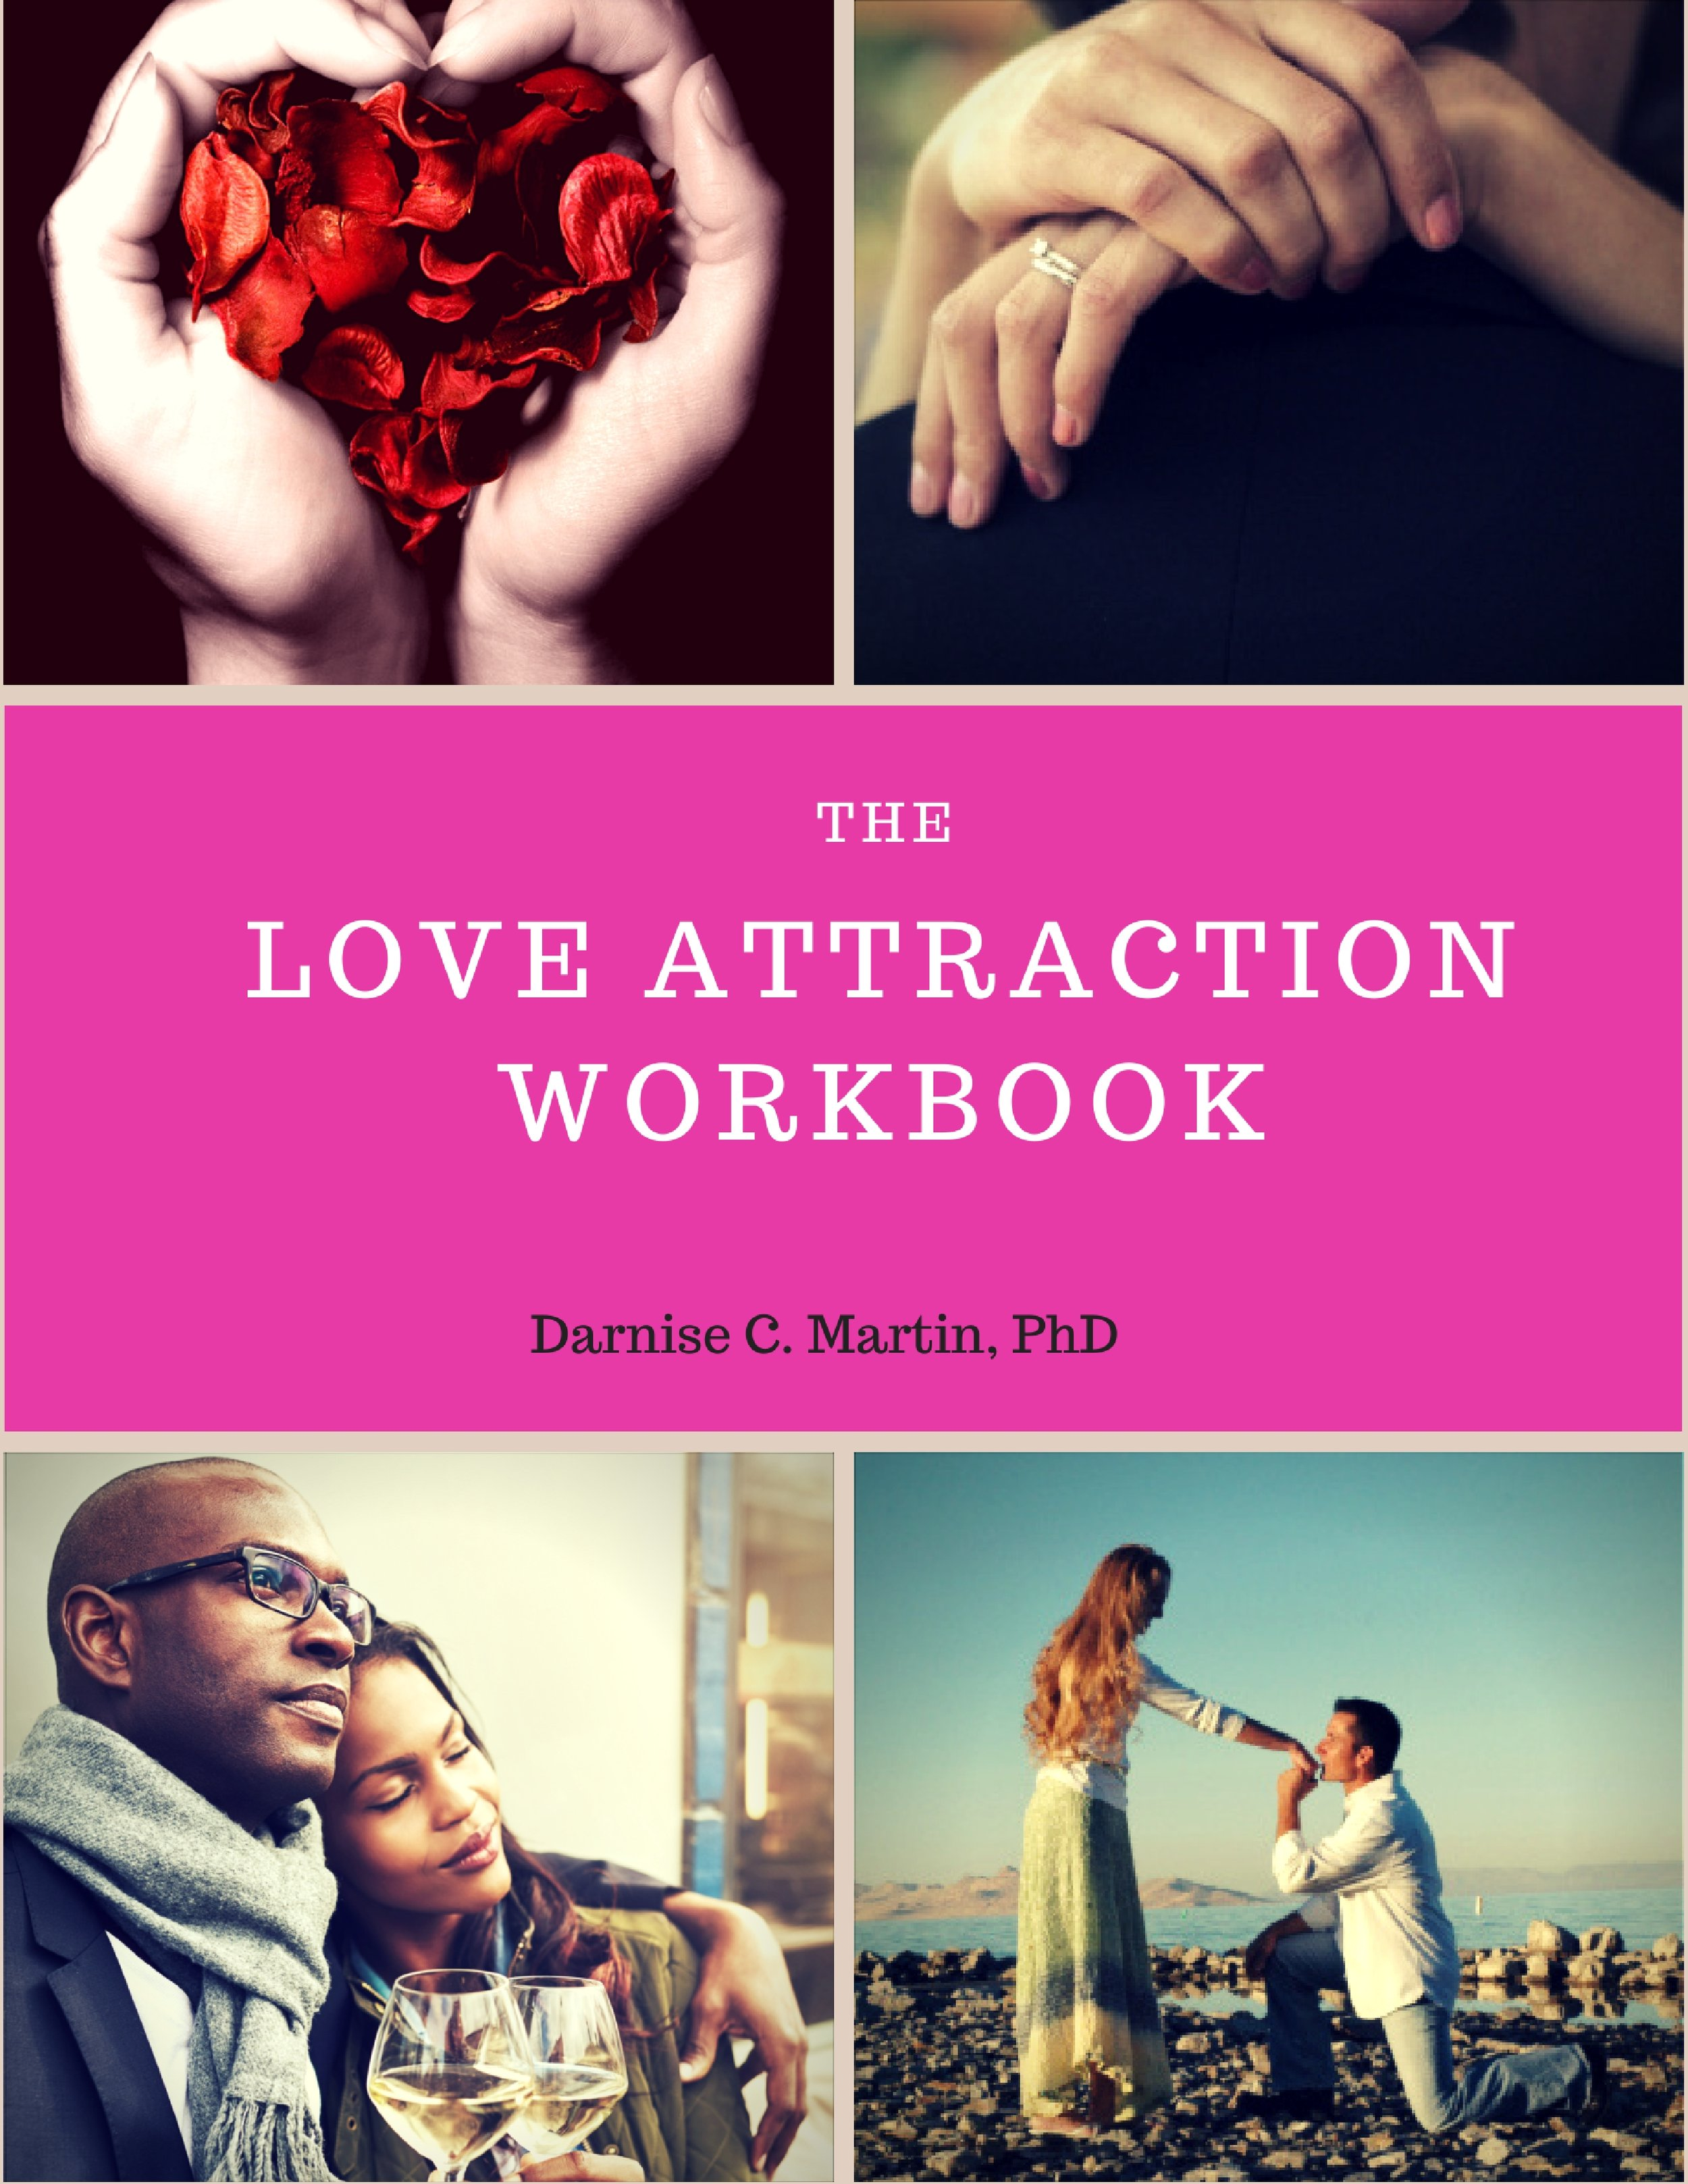 Love Attraction Begins On The Inside